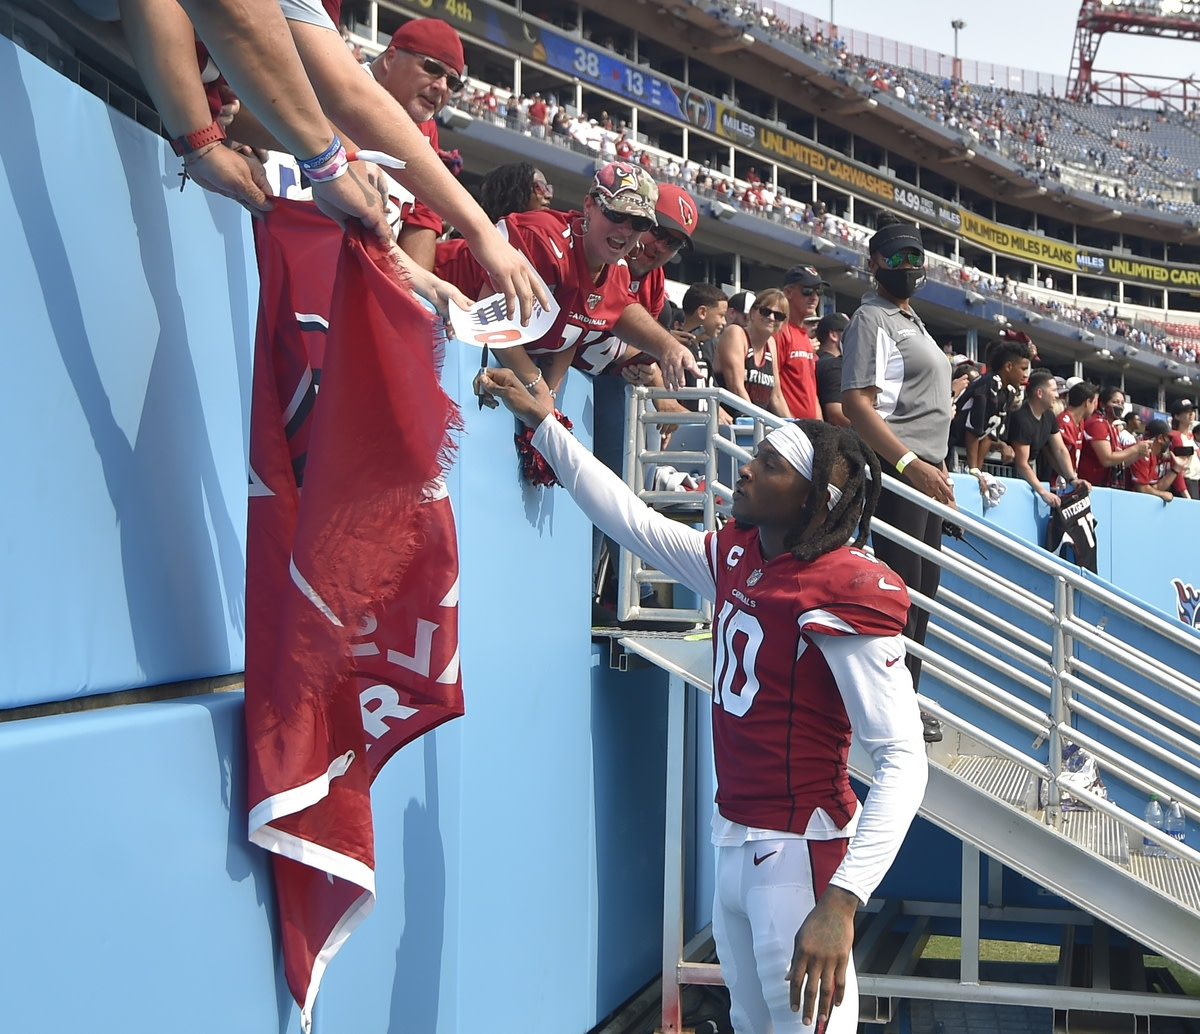 Sep 12, 2021; Nashville, Tennessee, USA; Arizona Cardinals wide receiver DeAndre Hopkins (10) signs a autograph for a fan during the second half at Nissan Stadium. Mandatory Credit: Steve Roberts-USA TODAY Sports